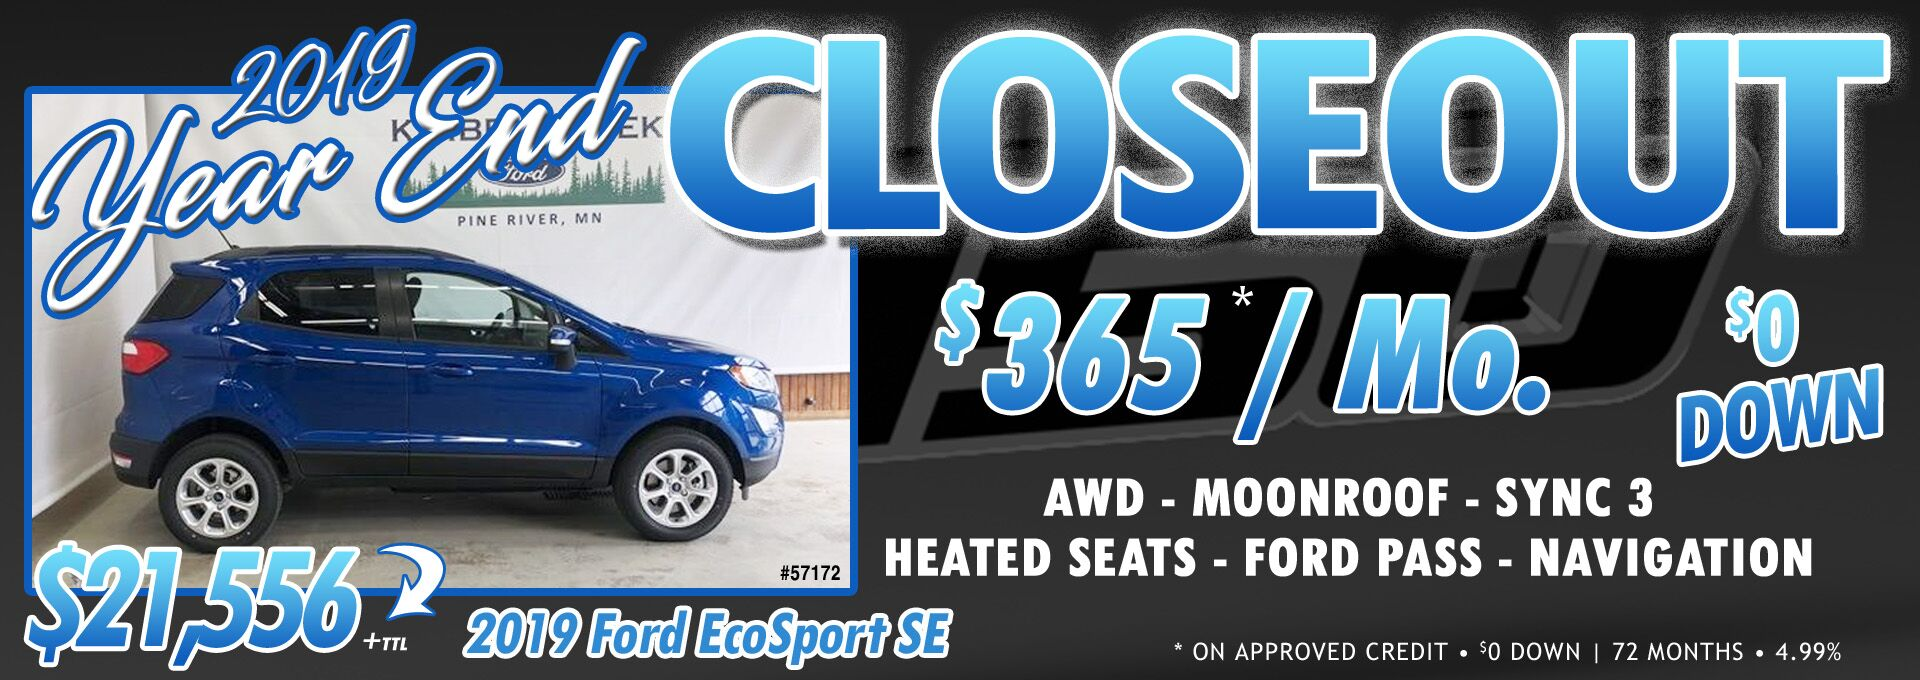 EcoBoost Closeout